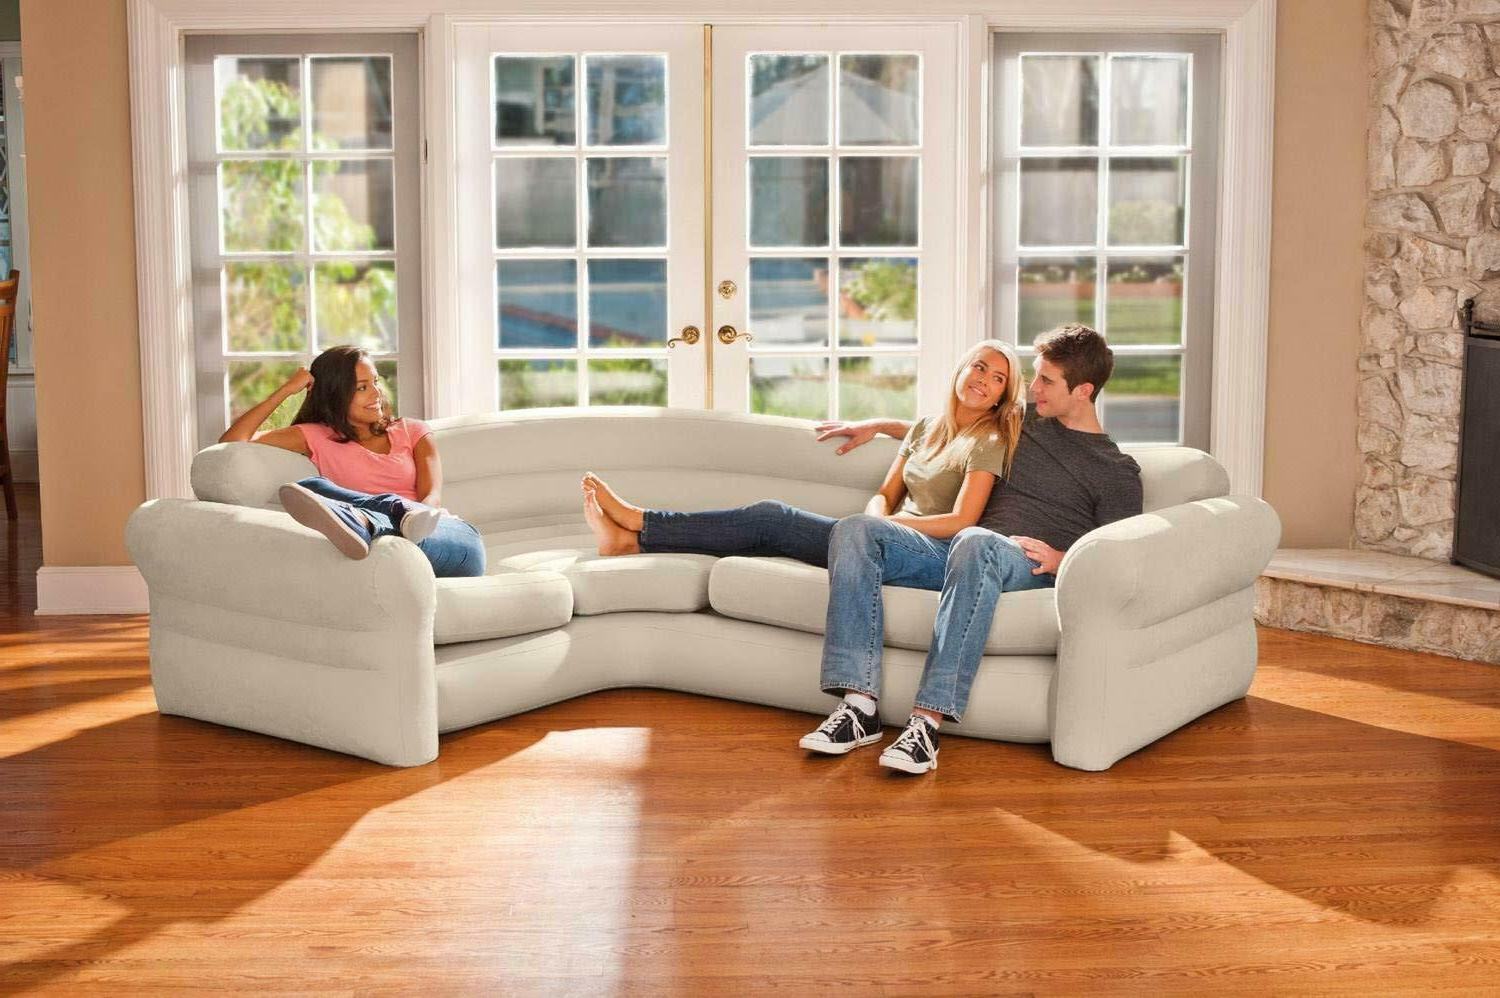 Futon Bed Couch Sofa Sectional Room Loveseat